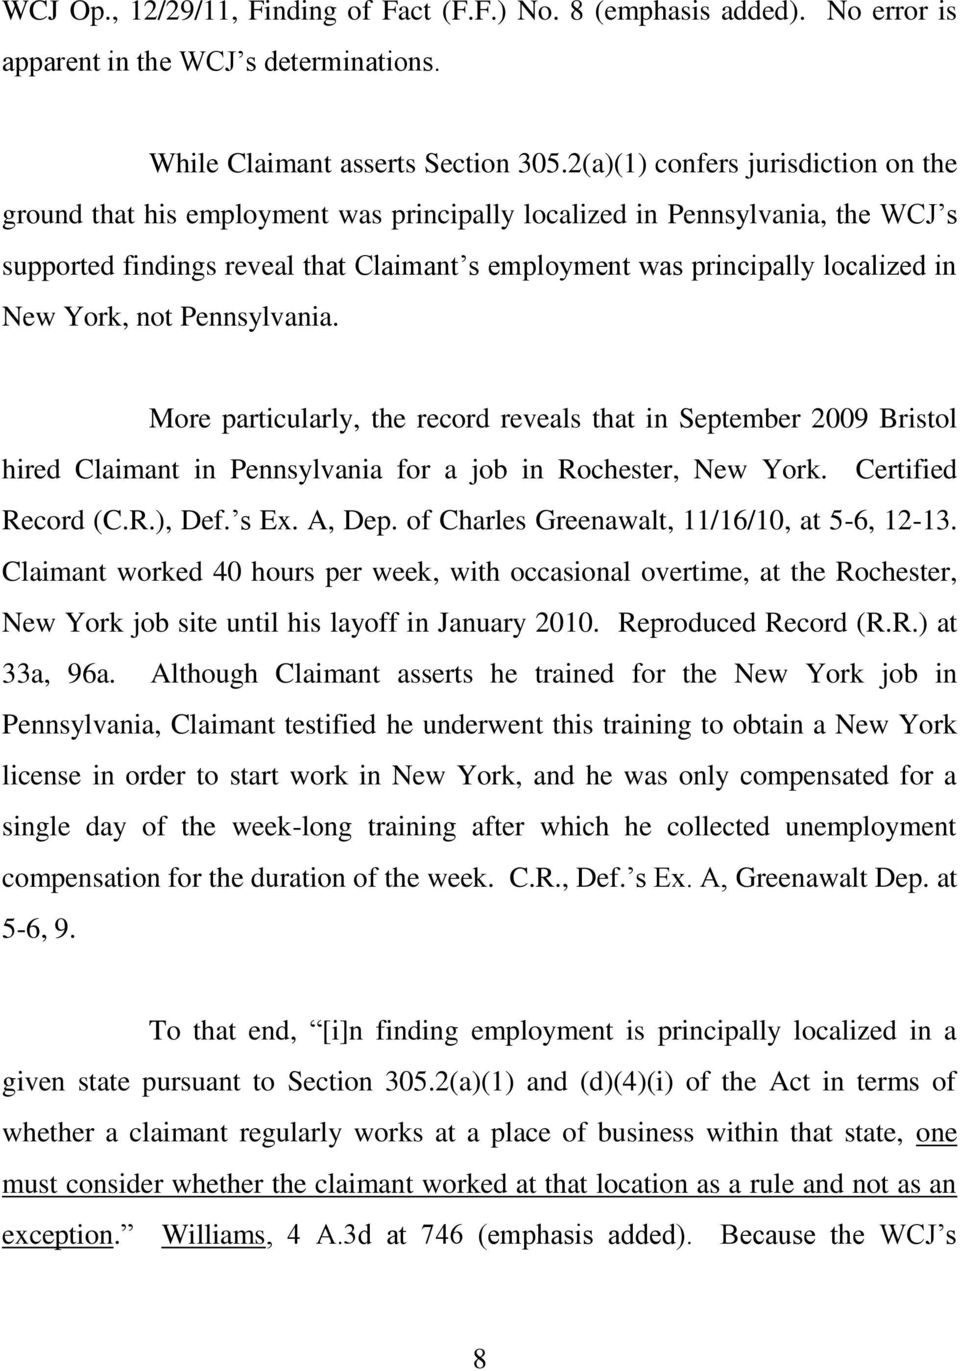 New York, not Pennsylvania. More particularly, the record reveals that in September 2009 Bristol hired Claimant in Pennsylvania for a job in Rochester, New York. Certified Record (C.R.), Def. s Ex.